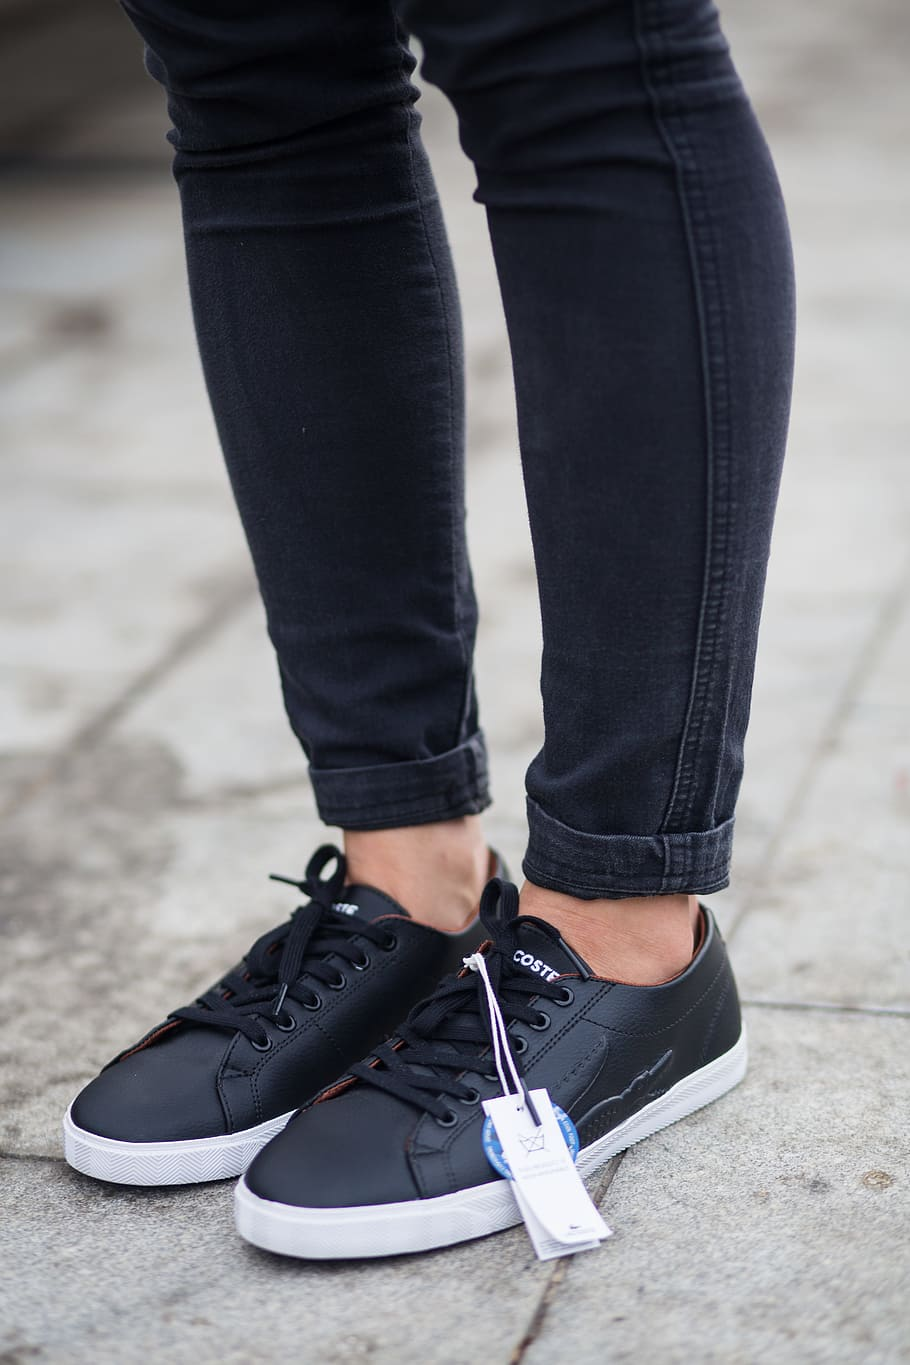 black lacoste sneakers with white soles worn with black skinny jeans